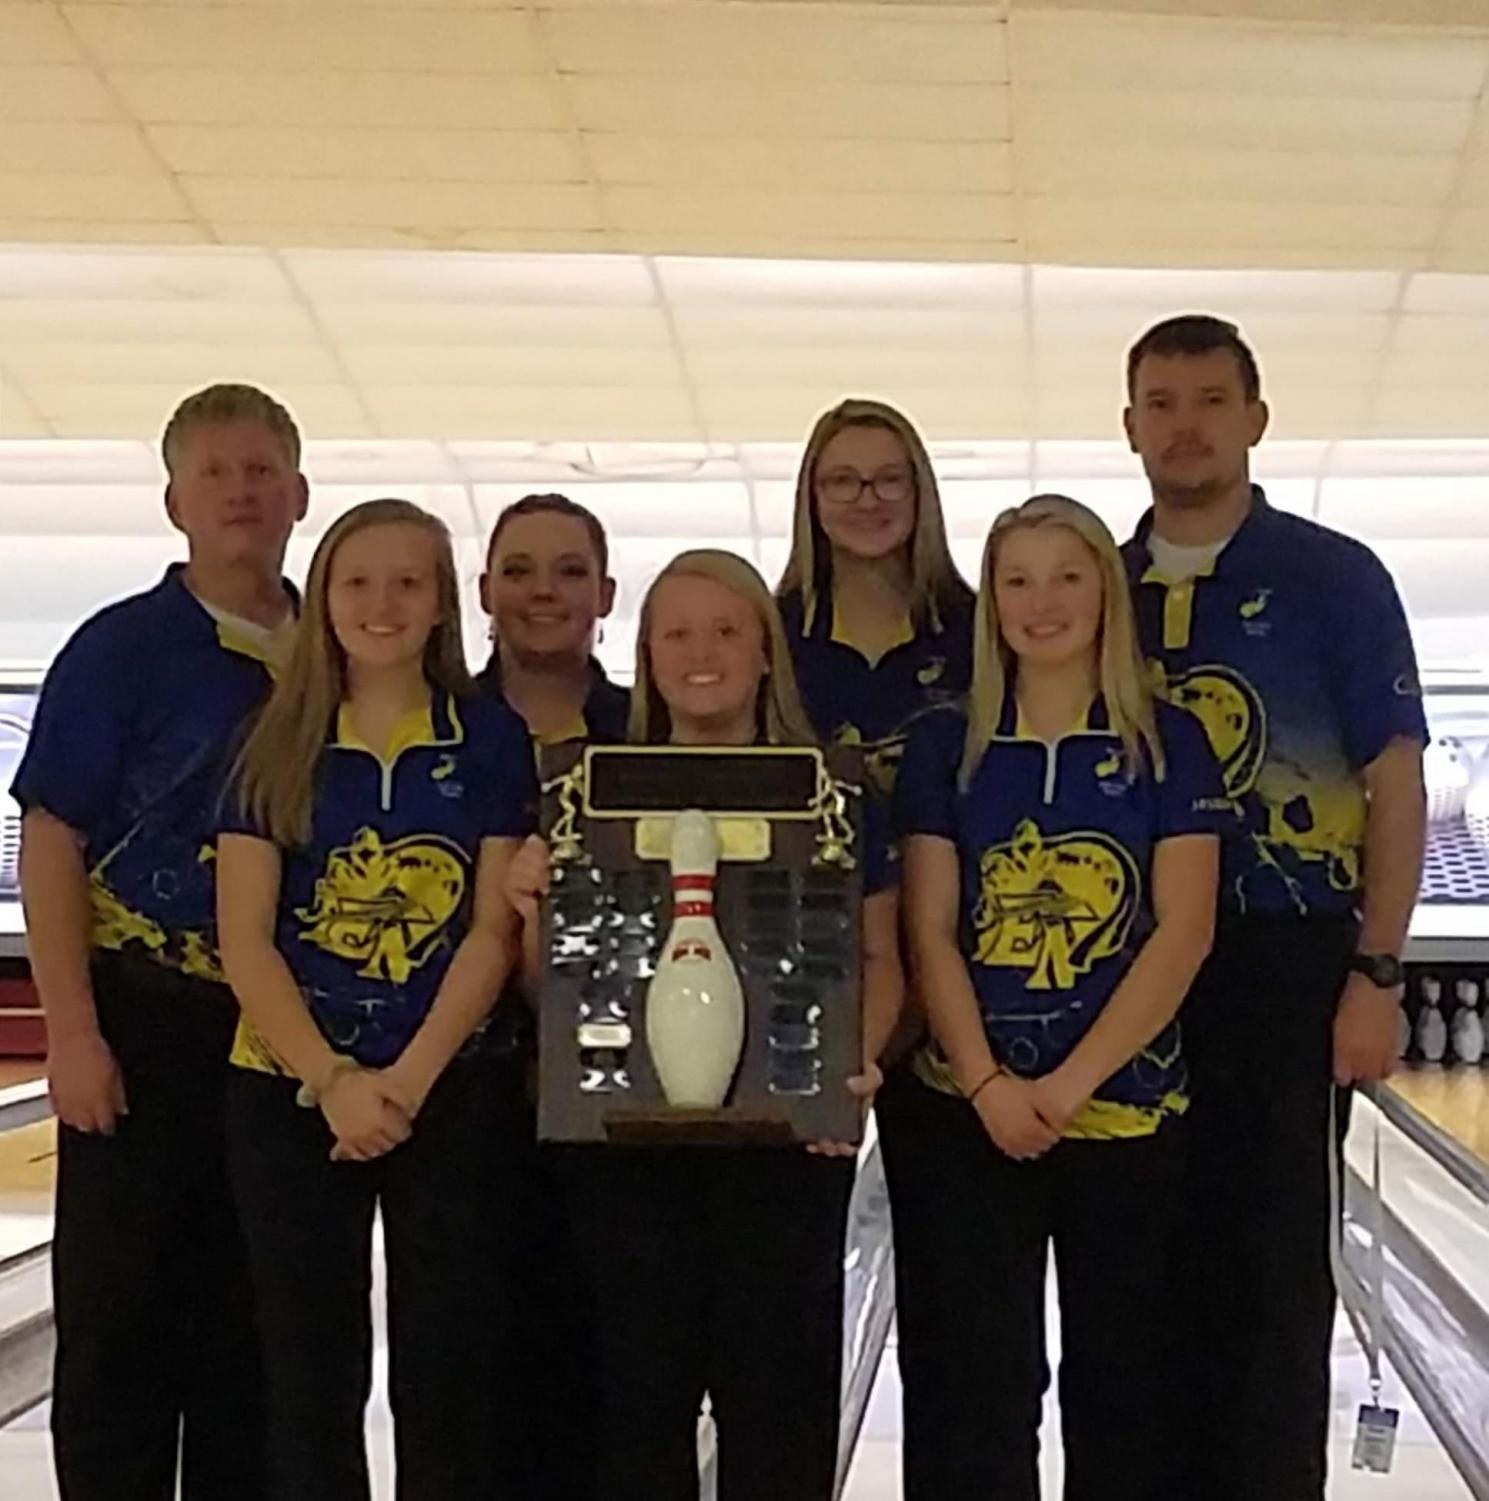 Bowling Team with Coach Dave and Coach Steve